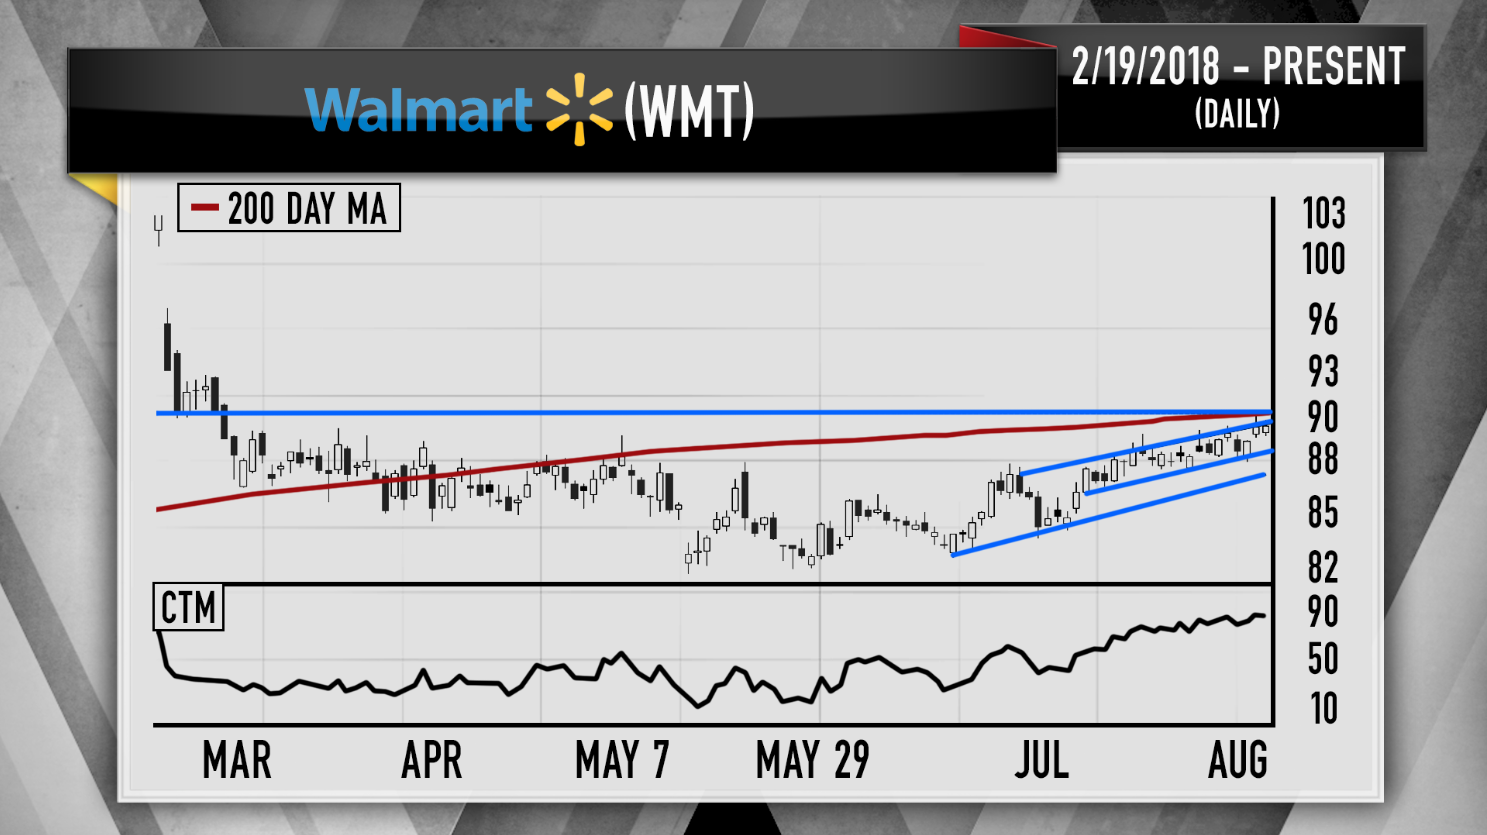 Cramer Charts Say Costco Target Ready For Pullbacks Walmart A Buy